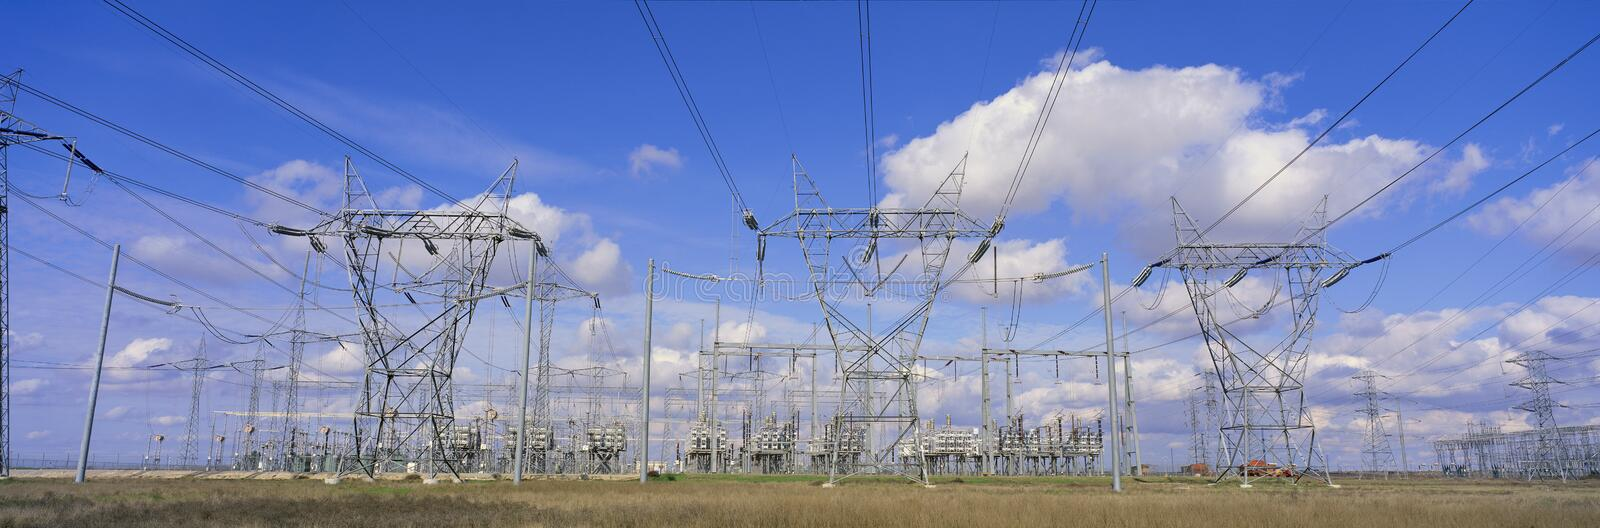 Download Electrical pylons stock photo. Image of central, america - 23162612